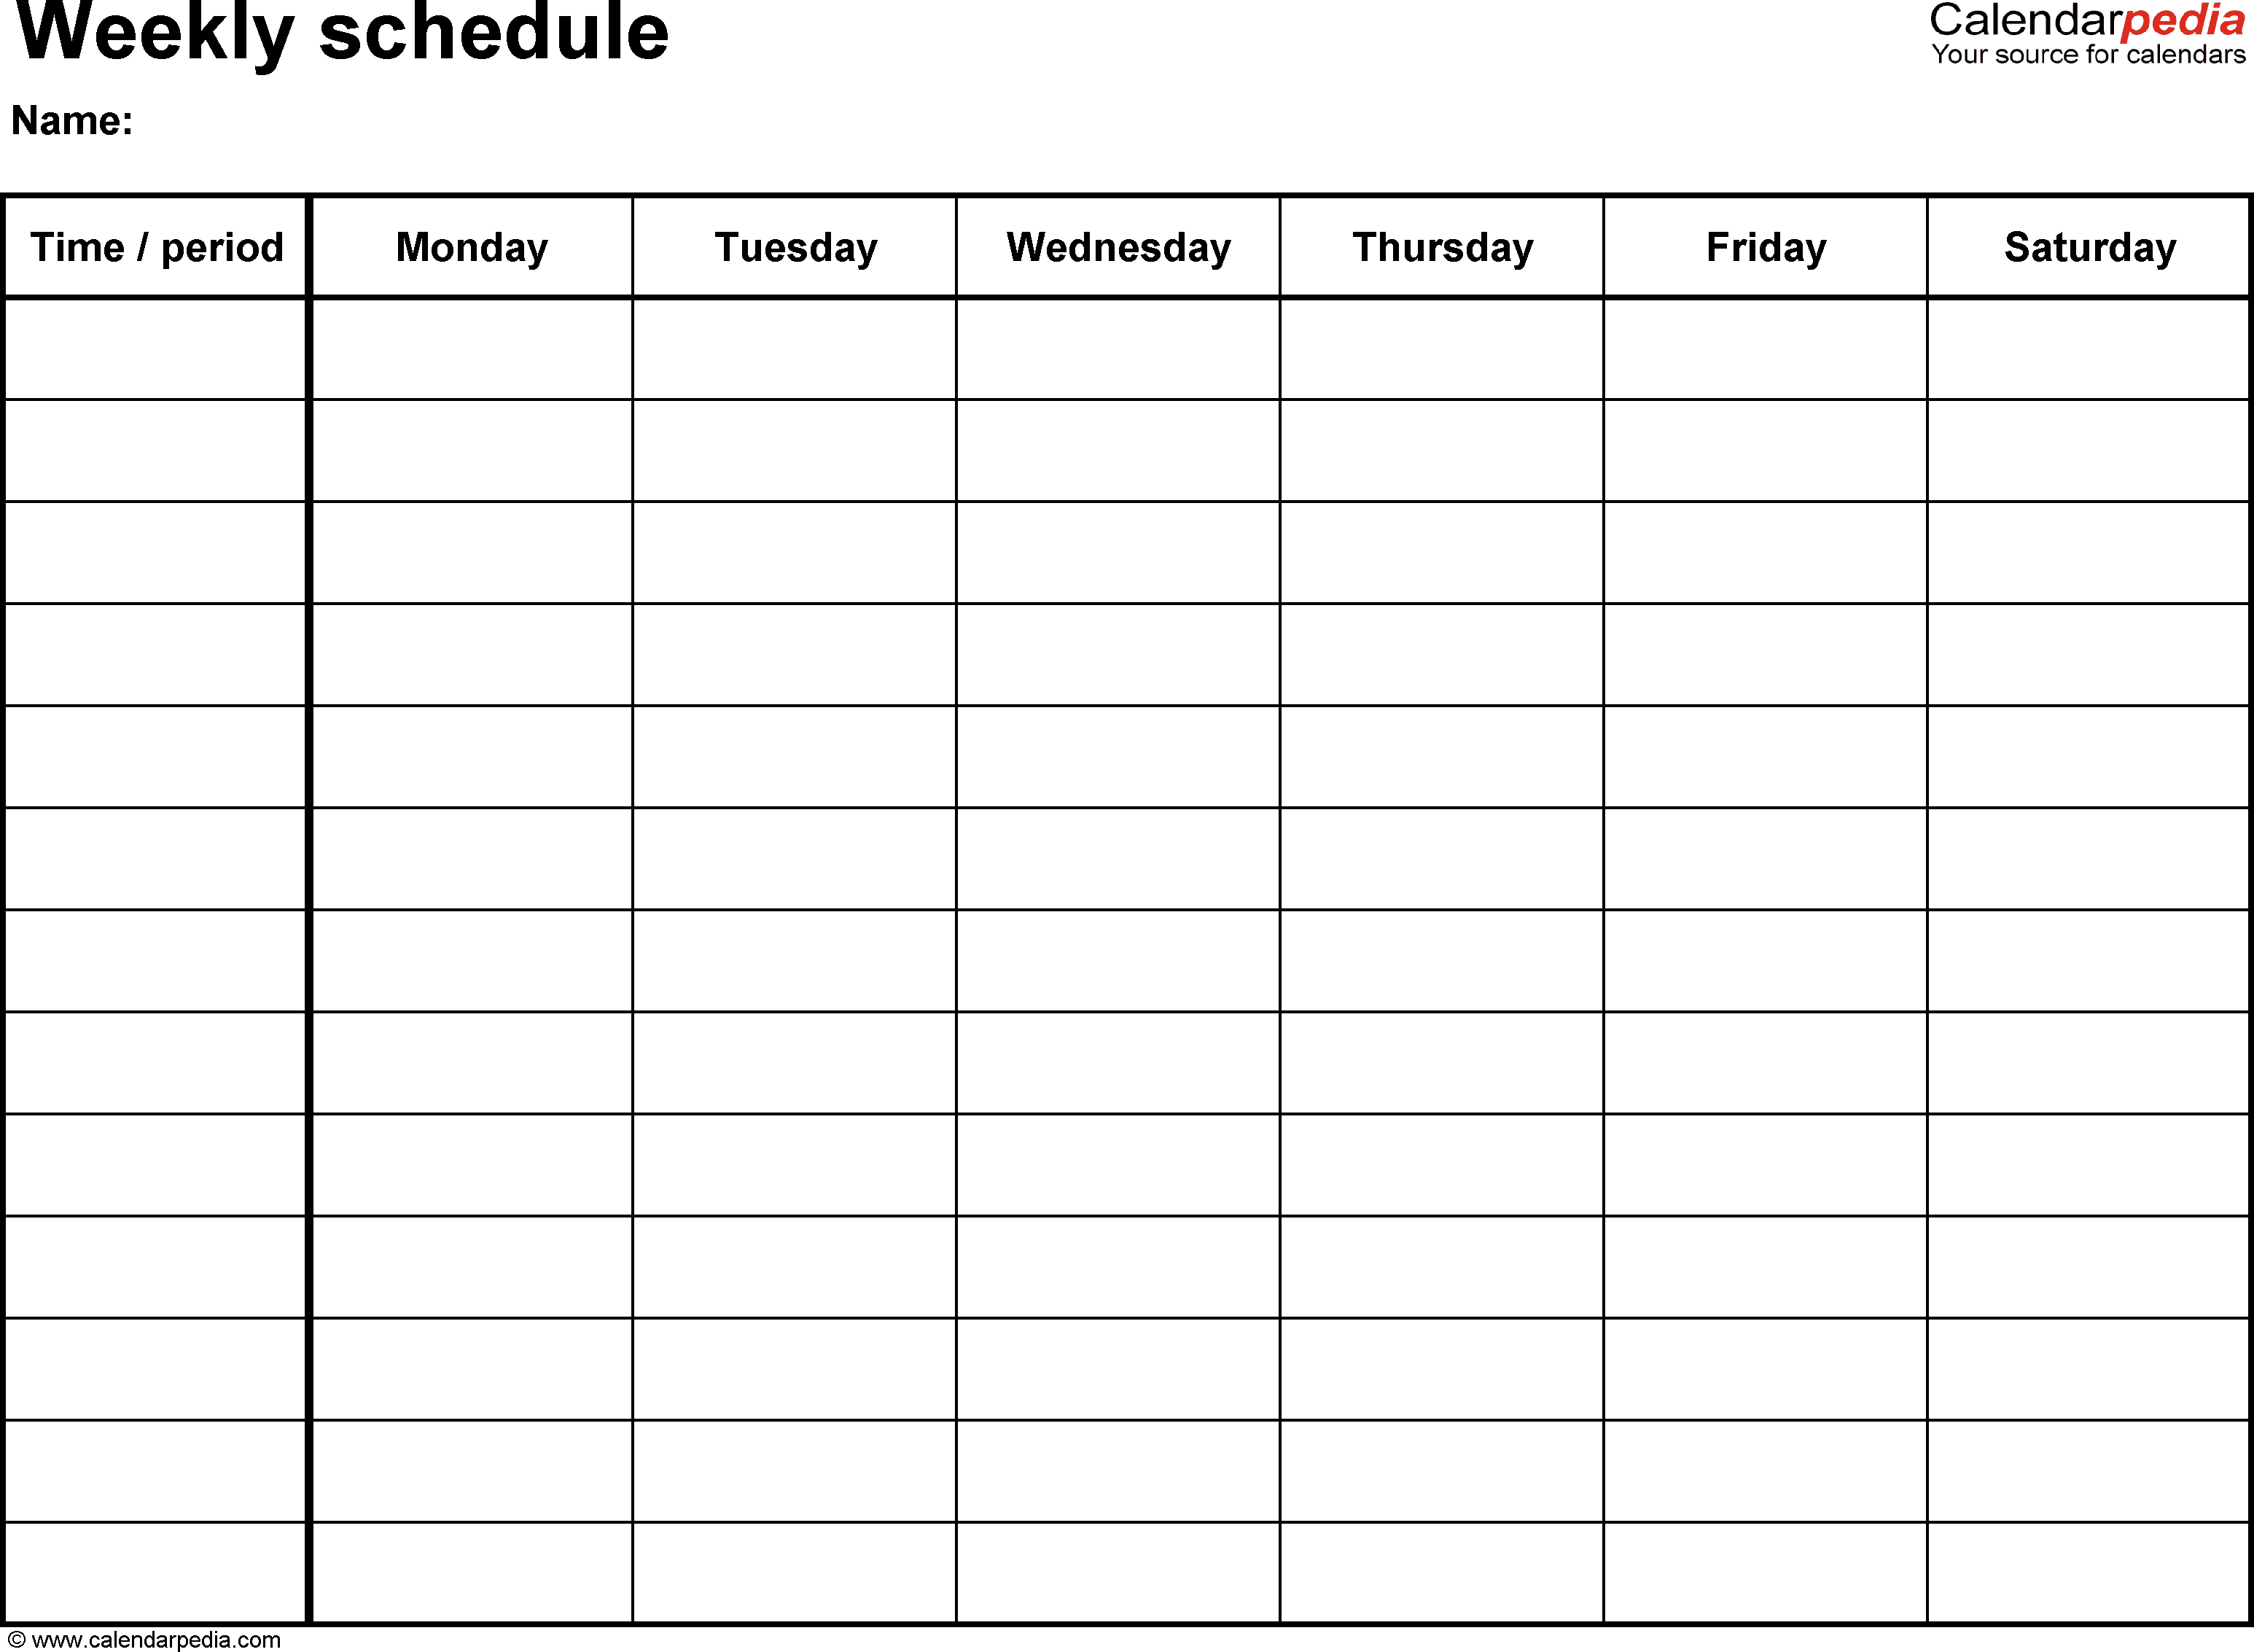 Free Weekly Schedule Templates For Word - 18 Templates in Blank Calendar To Fill In Free